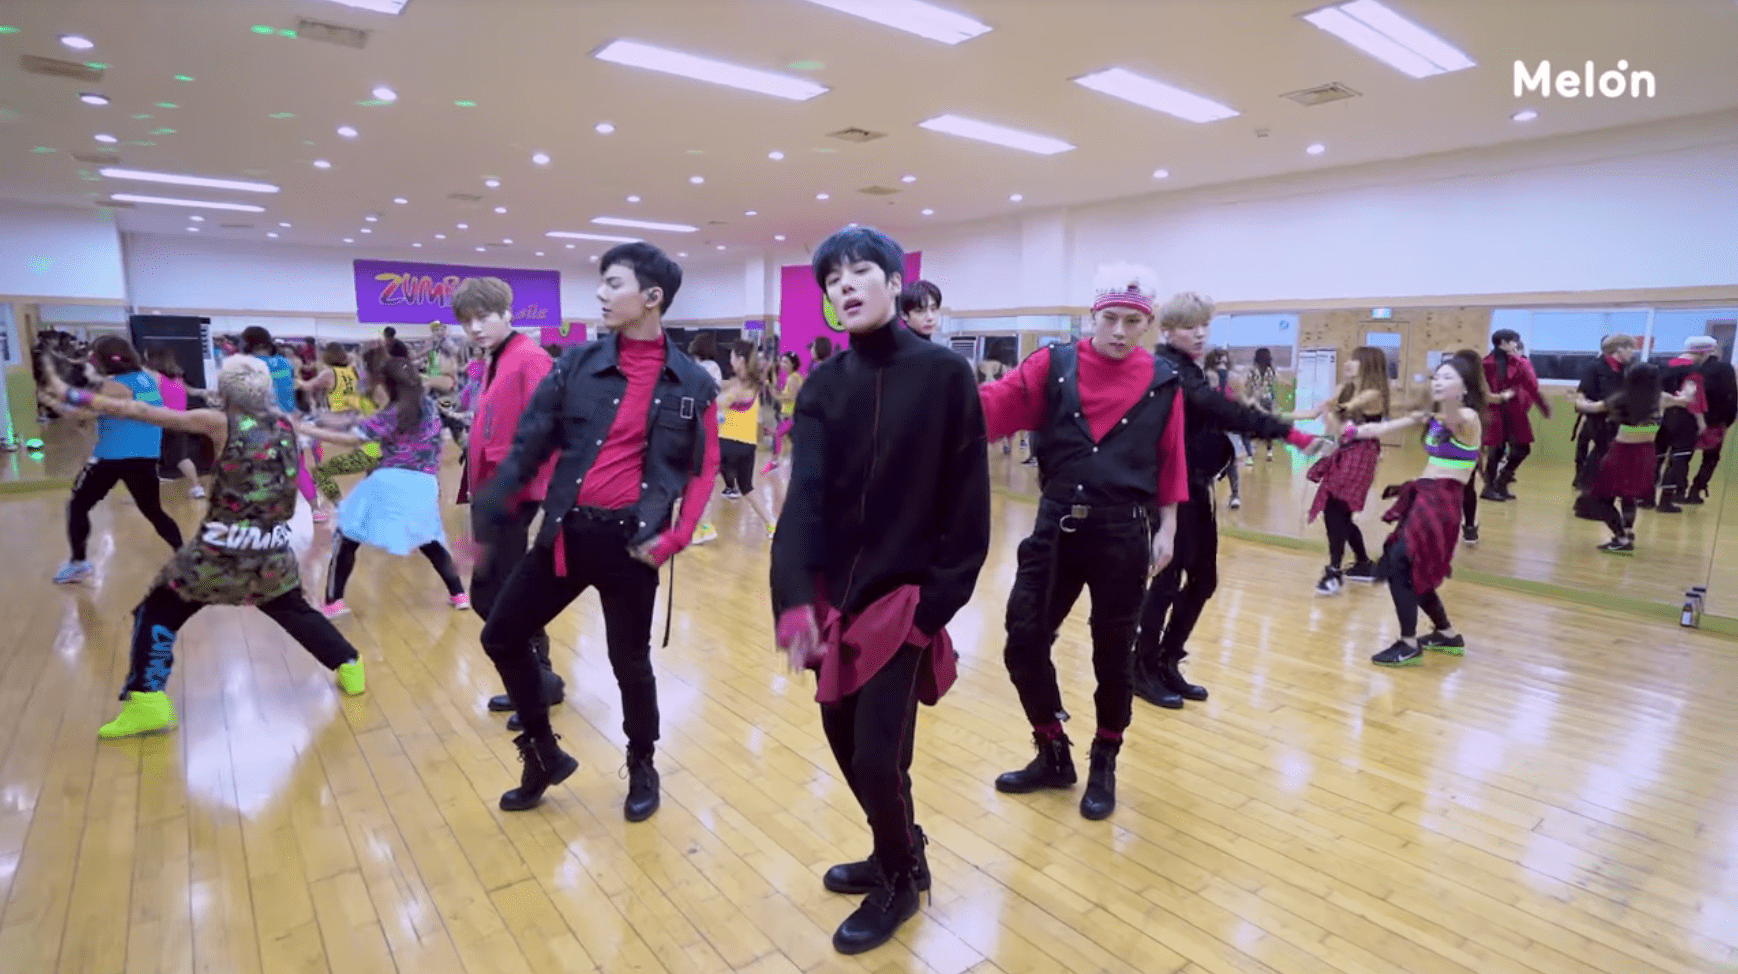 """Watch: MONSTA X Is Forced To Perform """"Dramarama"""" With No Music In Middle Of Jam-Packed Zumba Class"""